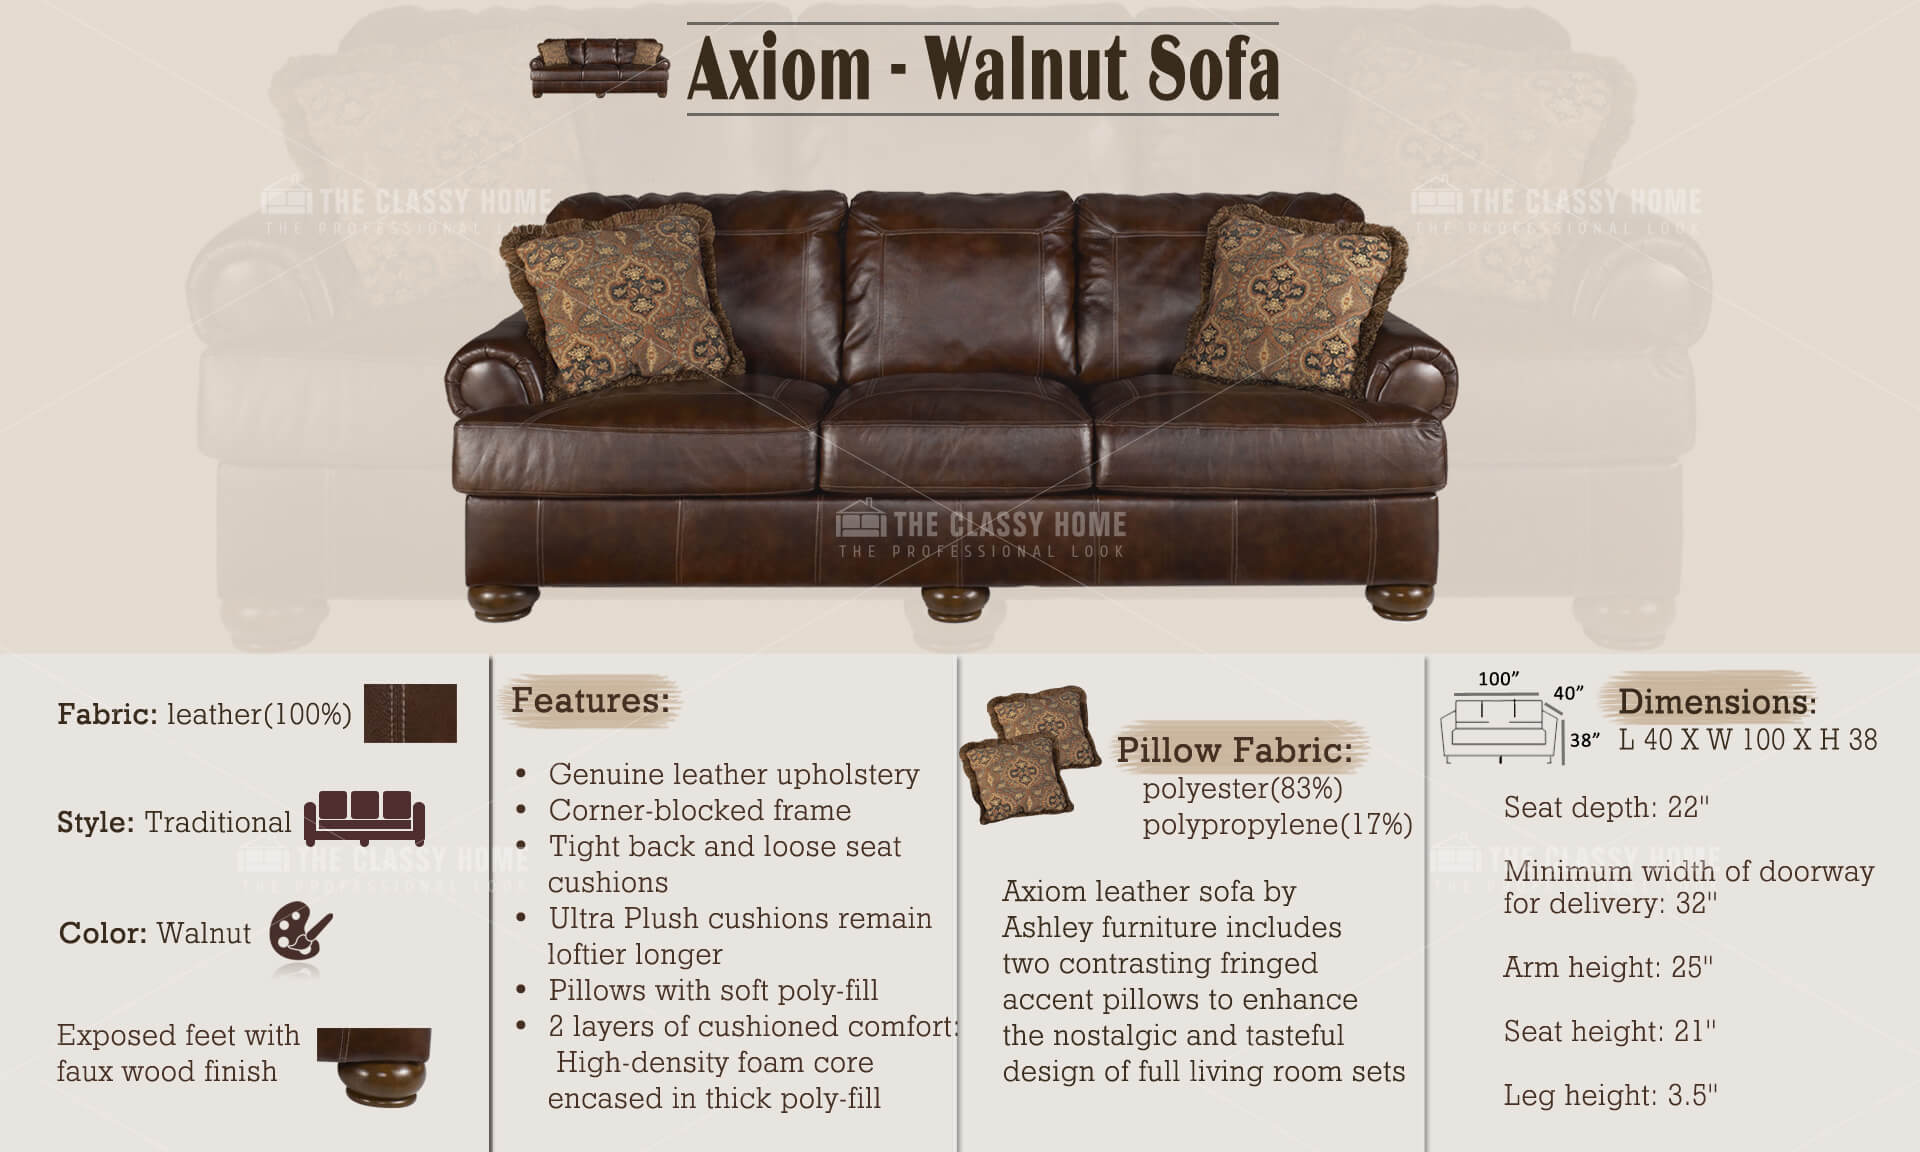 Ashley Furniture Axiom Walnut Sofa The Classy Home